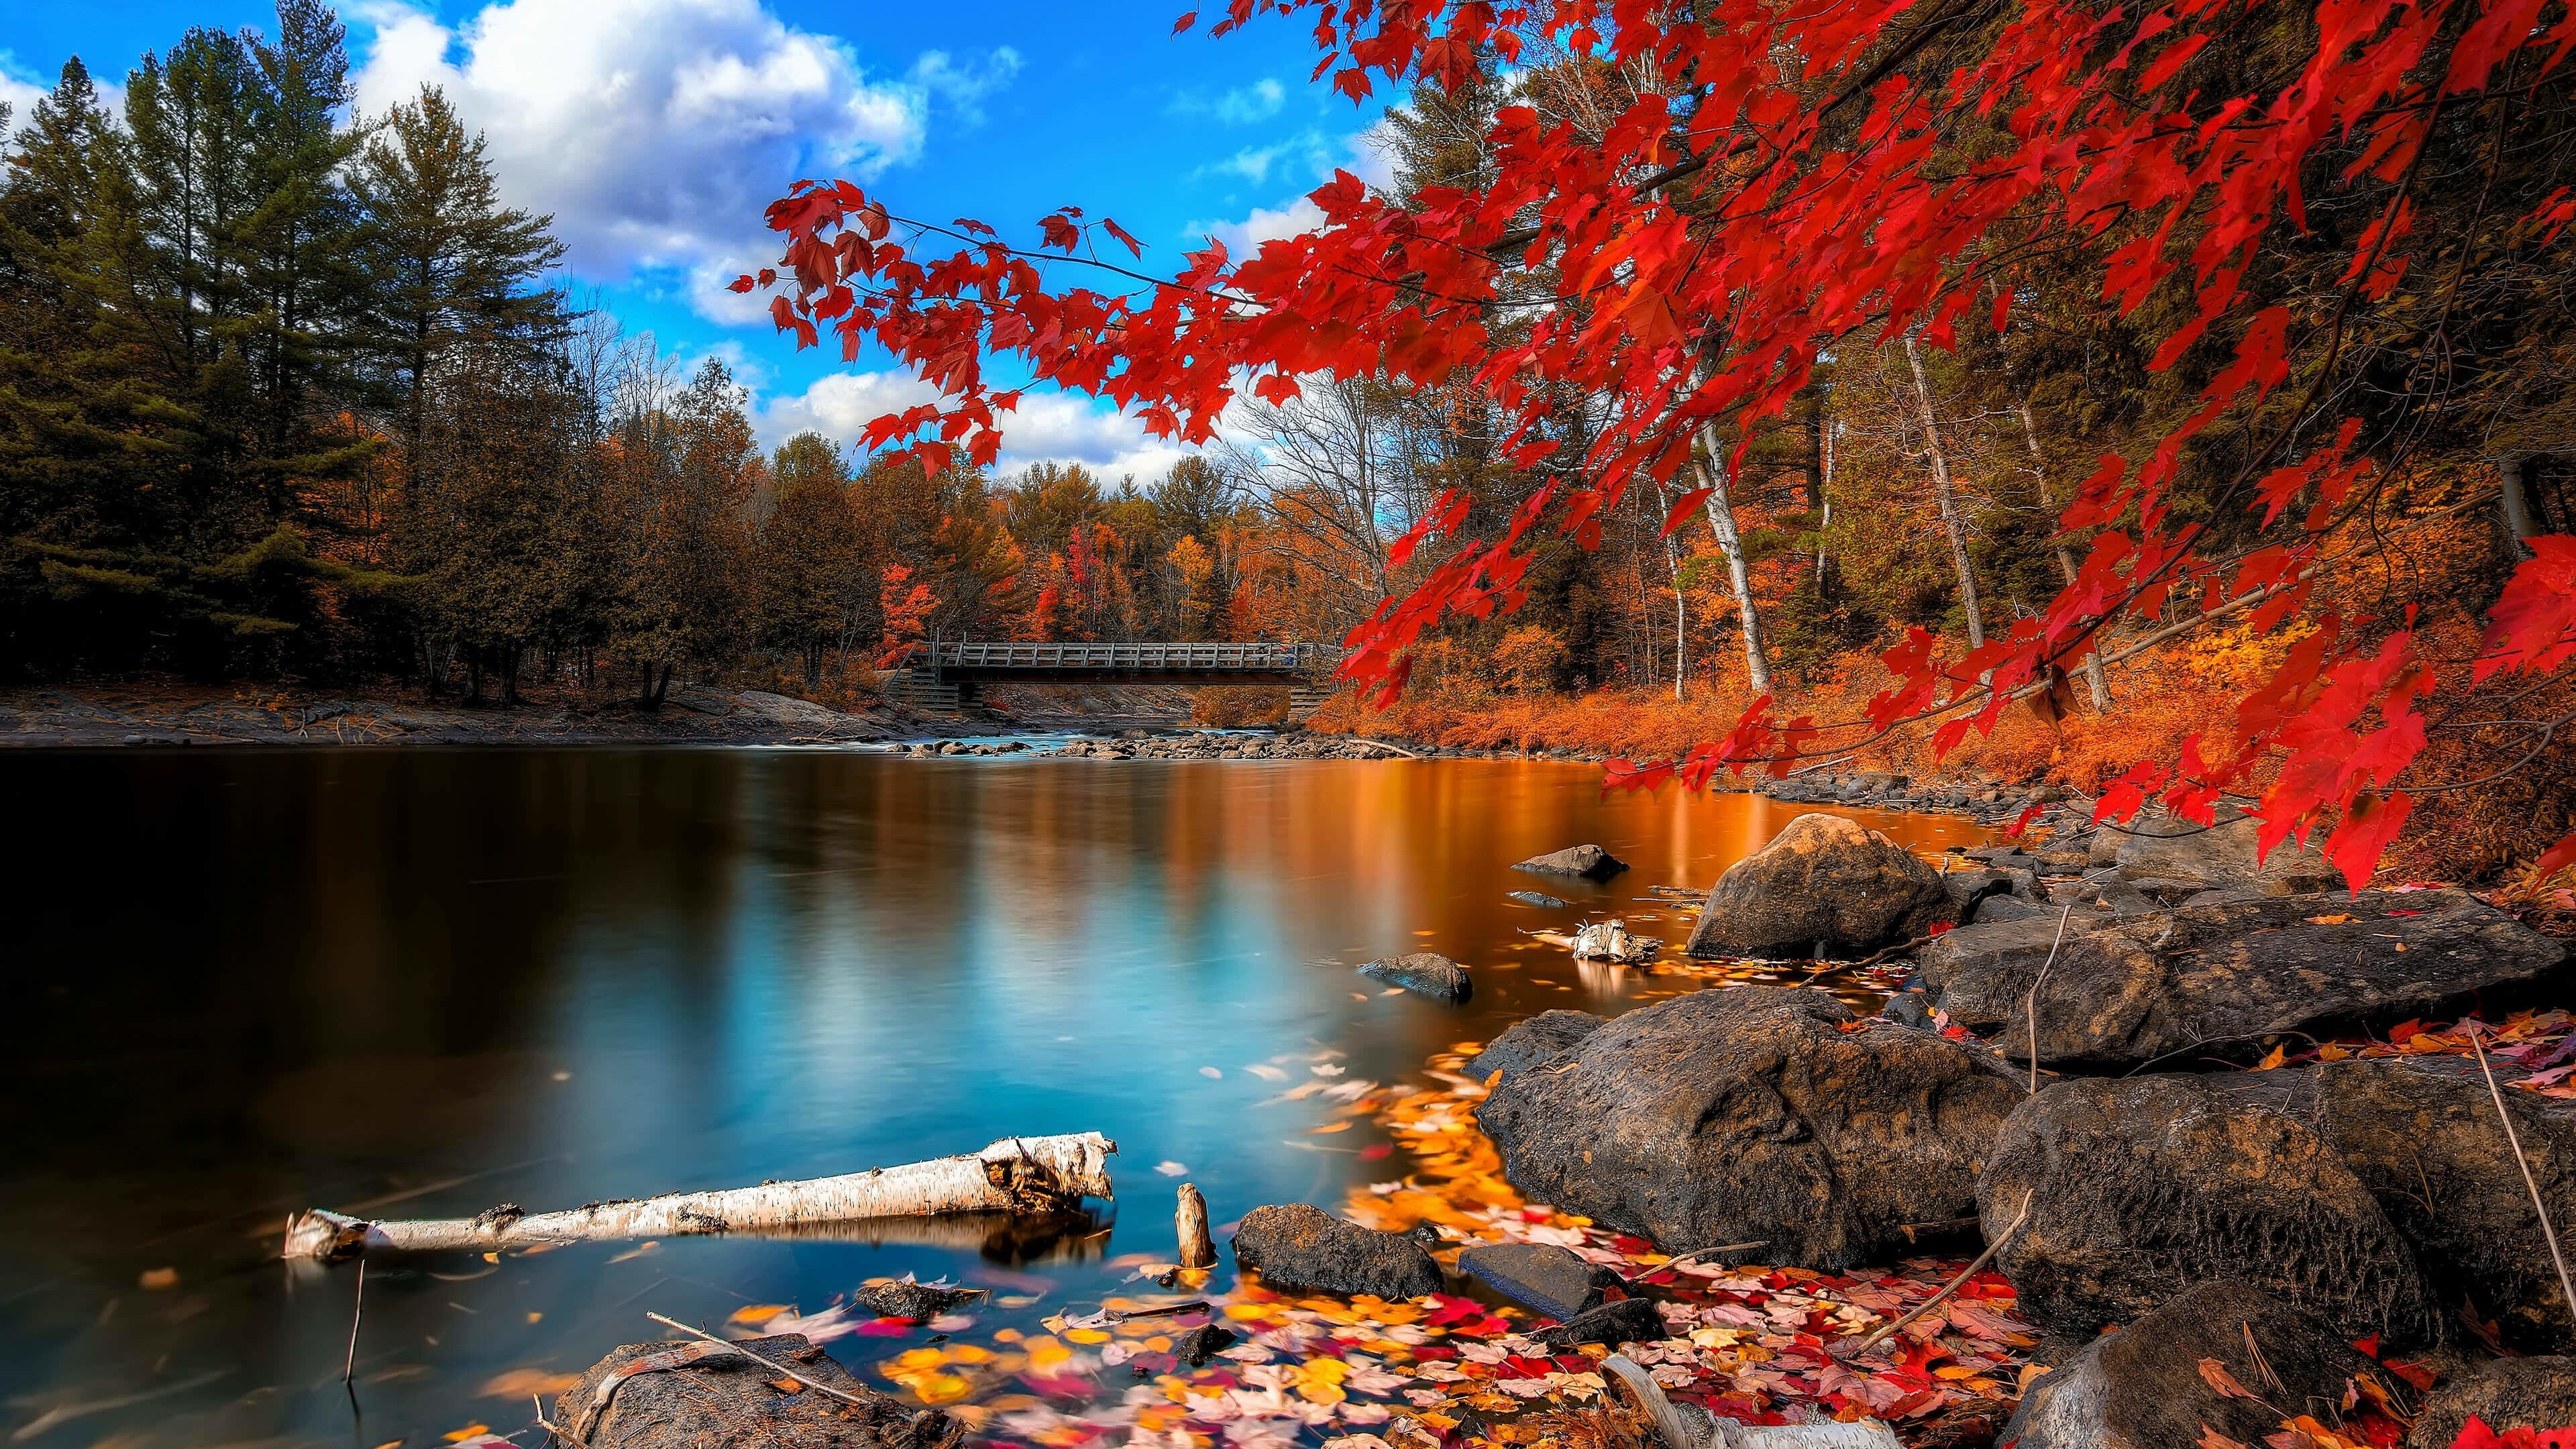 Oxtongue River, Algonquin Park Wallpaper for Desktop 4K 3840x2160